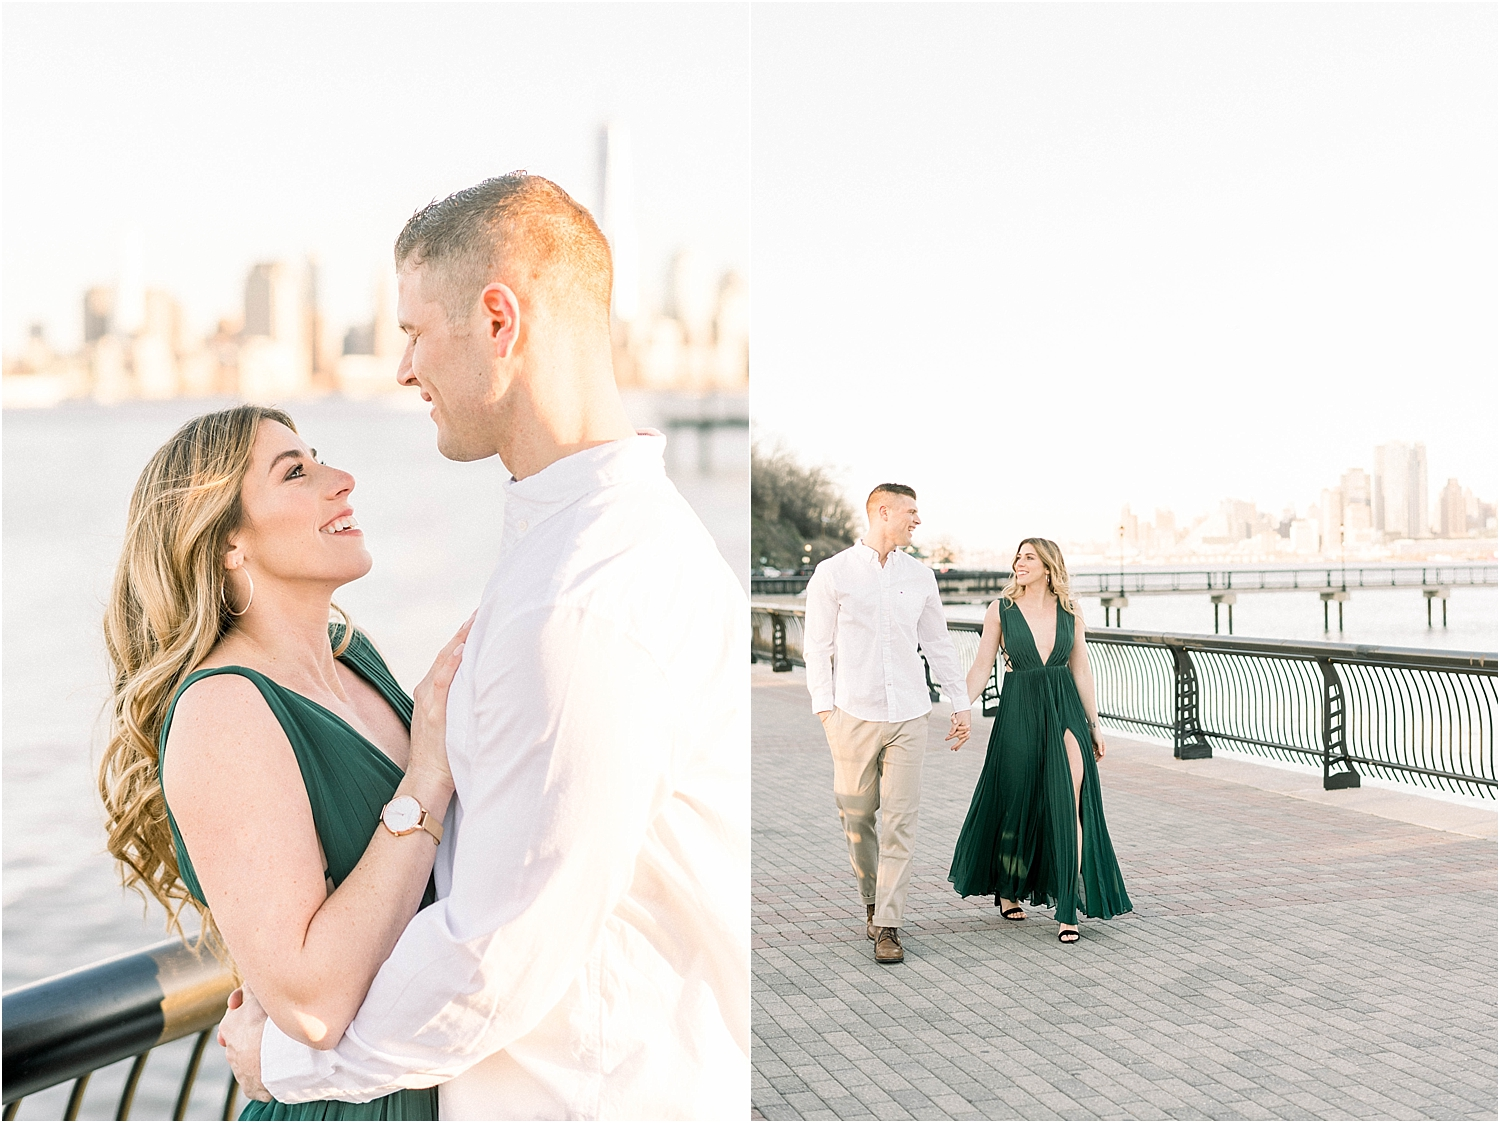 hoboken engagement session nj wedding photographer_0015.jpg